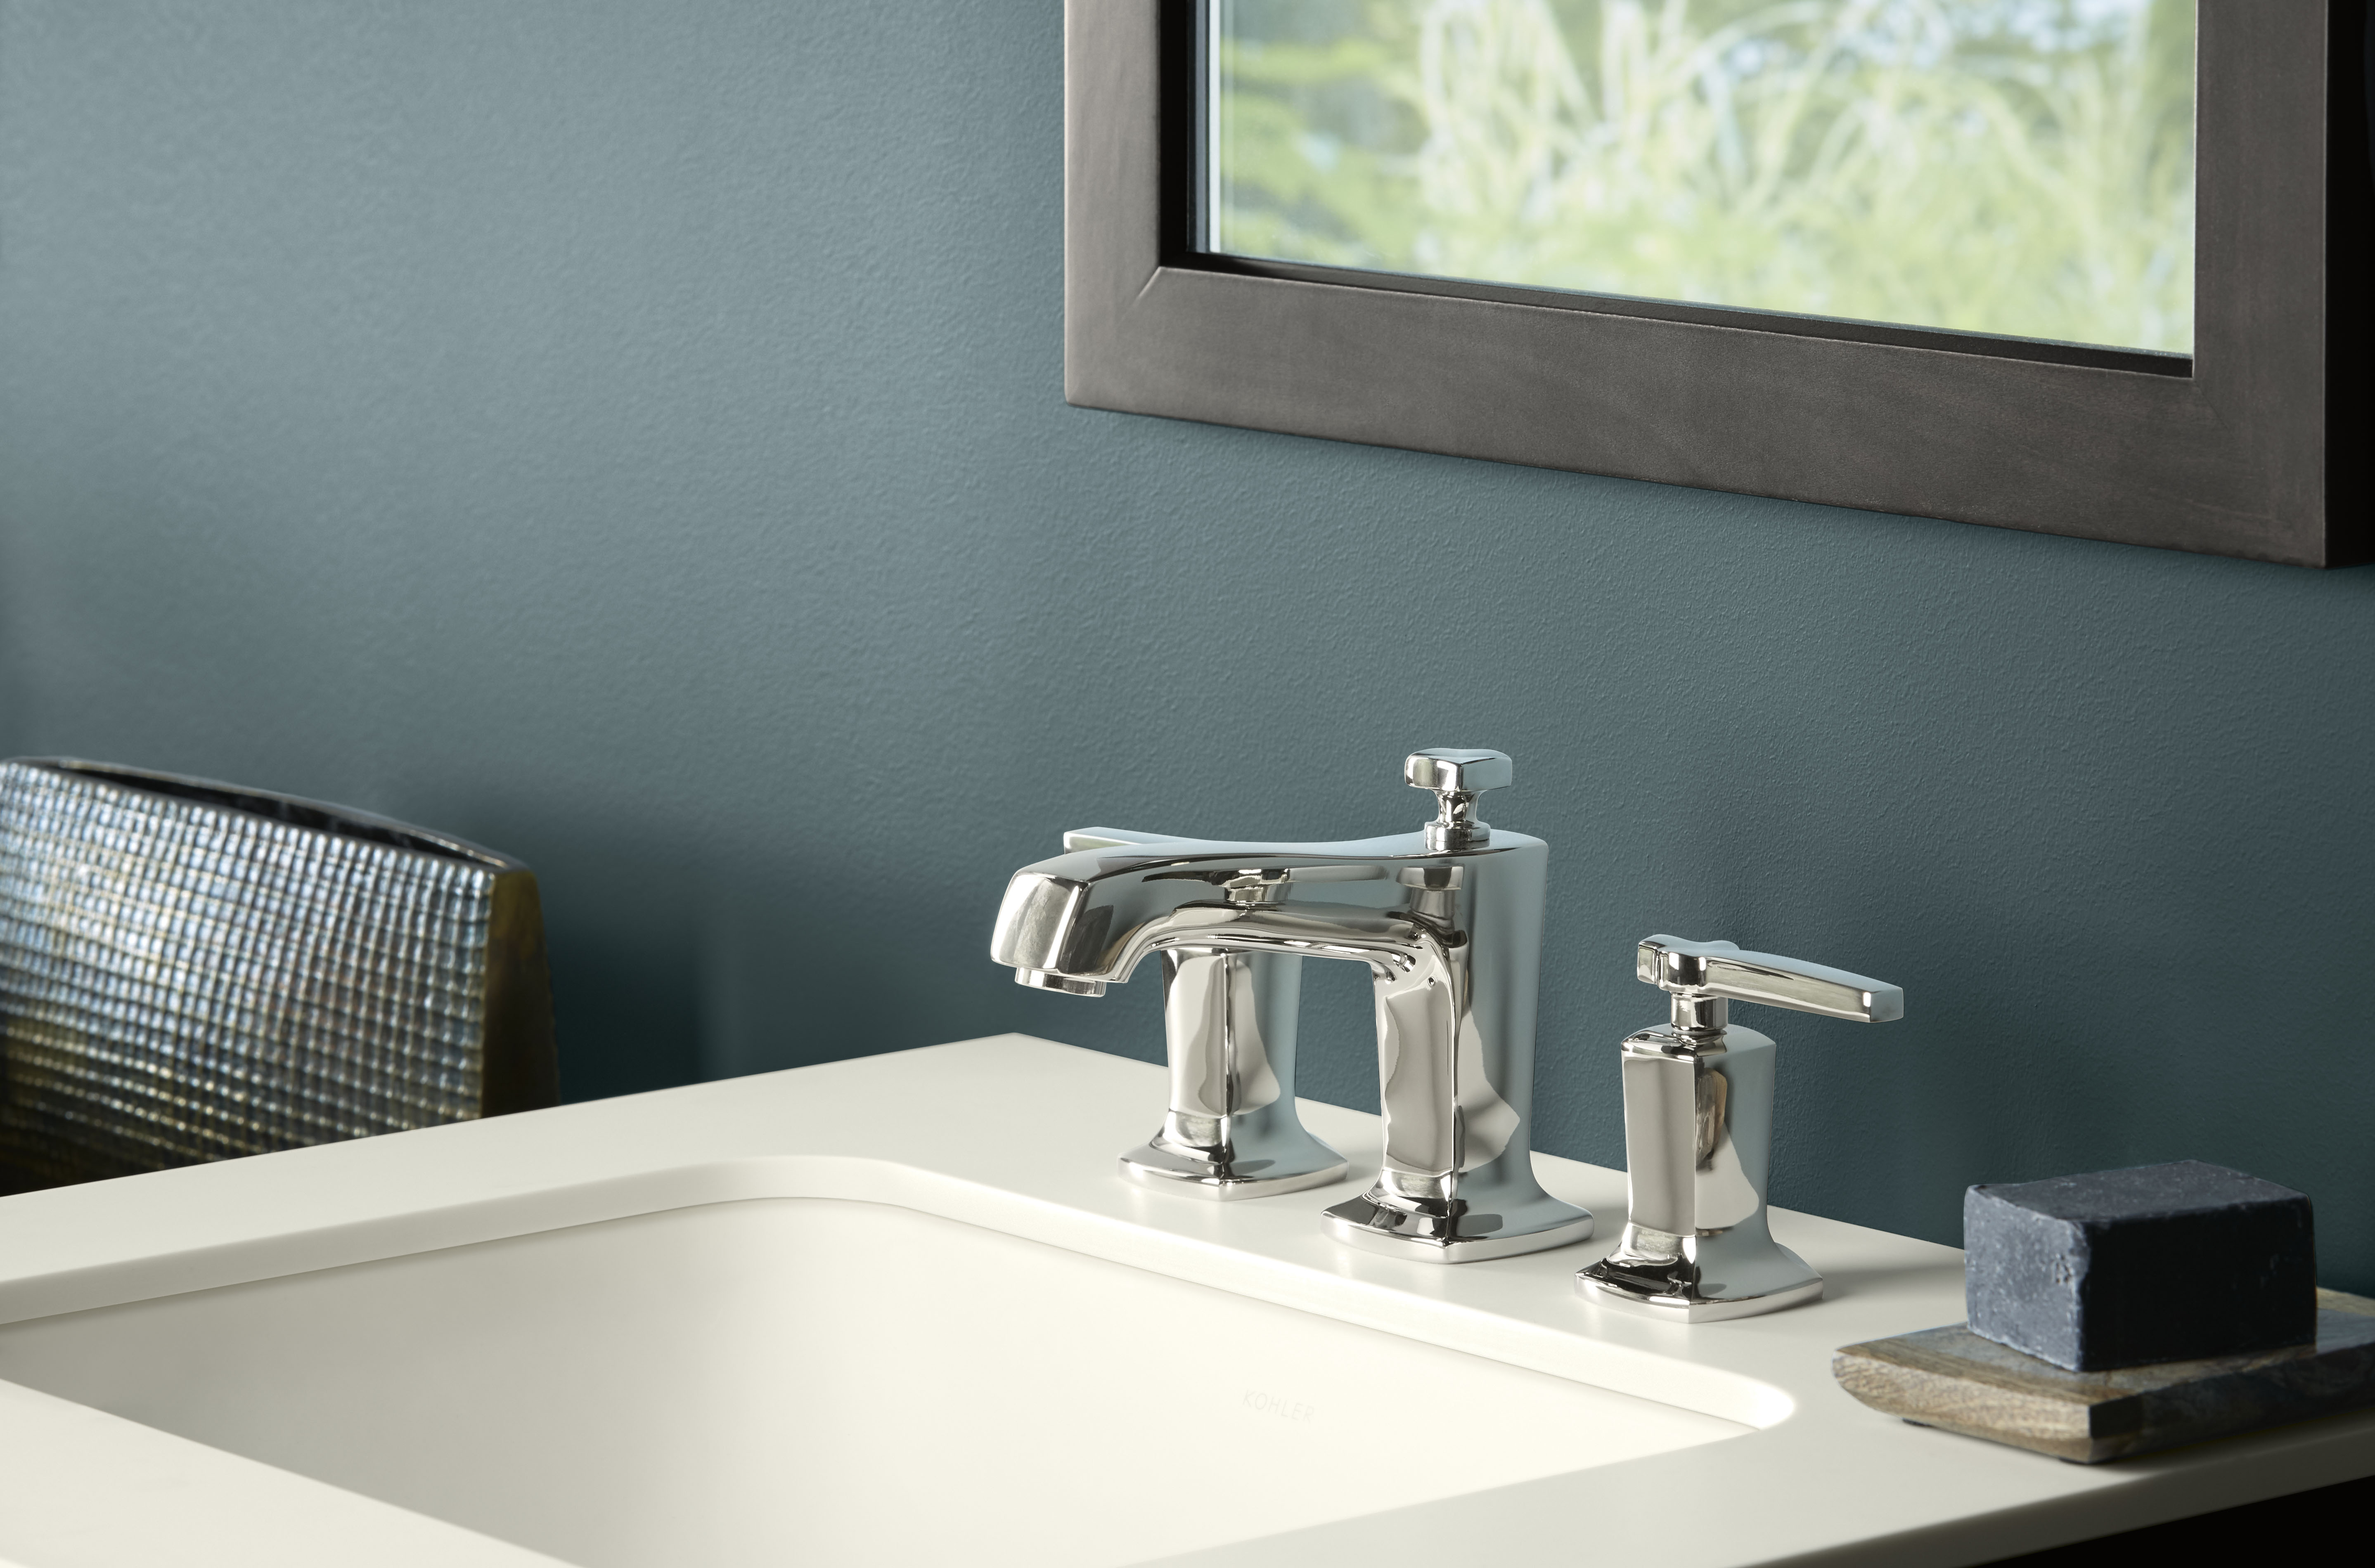 Margaux Faucet     Caxton Sink     The Vibrant Polished Nickel finish on this faucet adds brightness to the organic, nature-inspired environment.